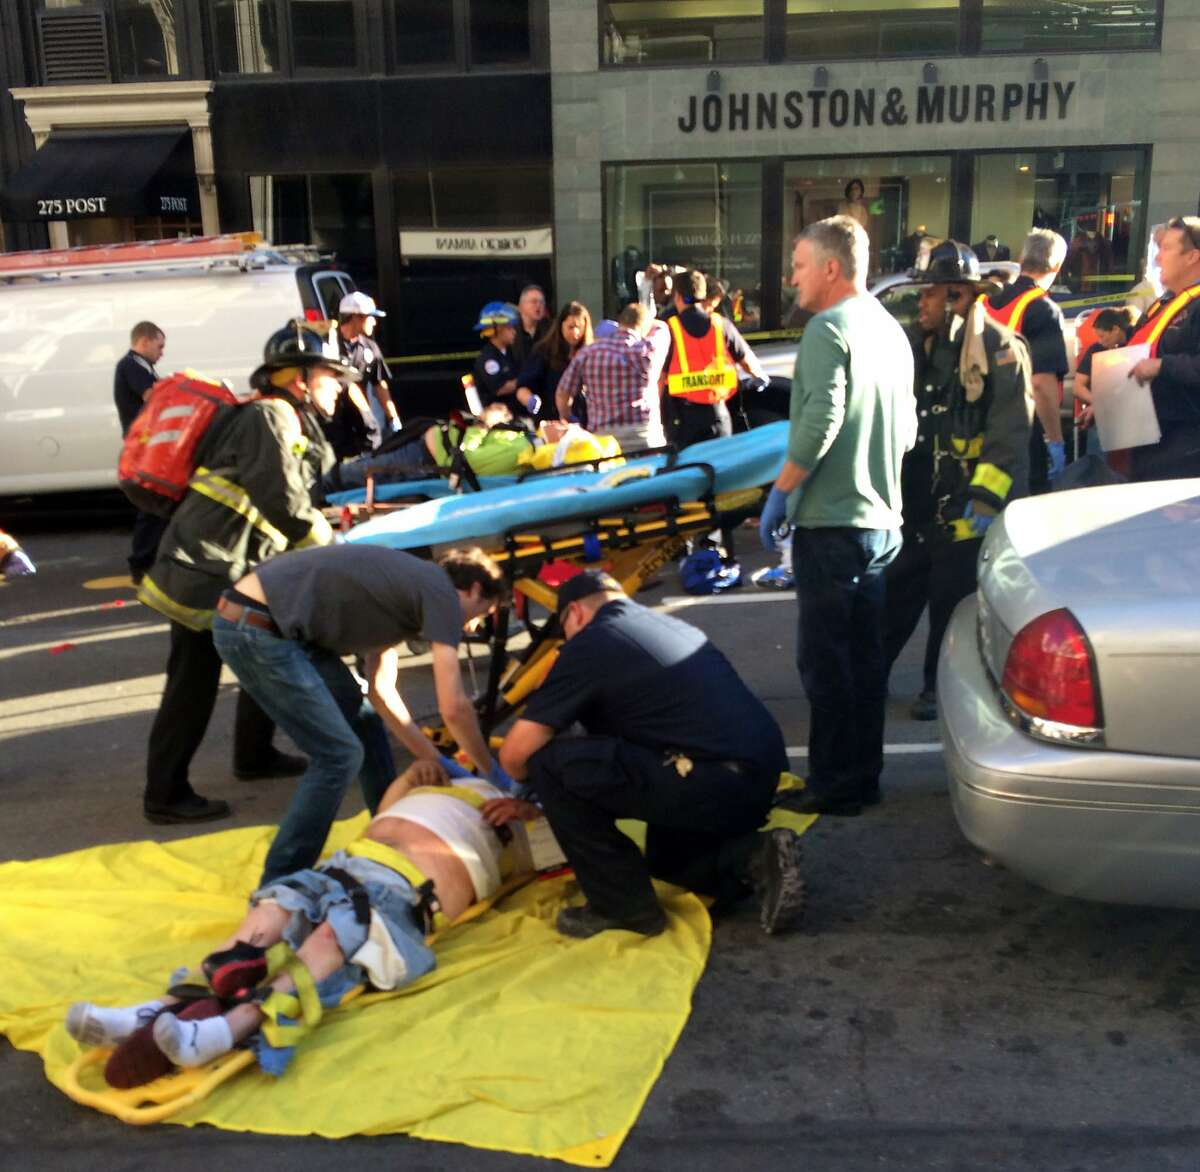 Emergency personnel tend to the injured after a double-decker tour bus smashed into a bicyclist, several cars and a construction site Friday, Nov. 13, 2015, in San Francisco's tourist-packed Union Square. Authorities say at least 19 were injured, including five critically. (Hoda Emam via AP)